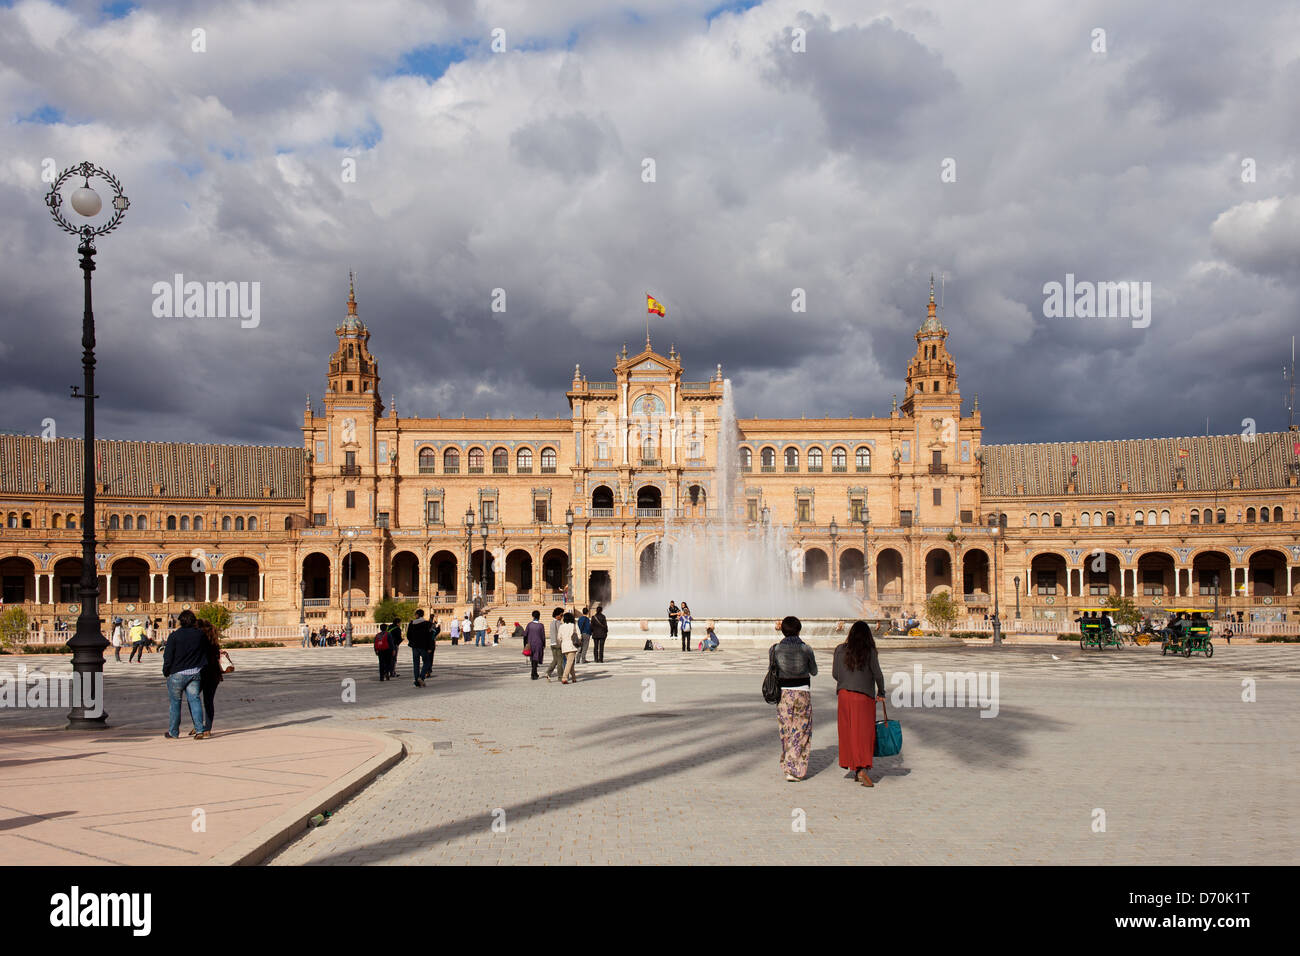 Plaza de Espana (Spain's Square) Renaissance Revival style pavilion and fountain in Seville, Andalusia, Spain. - Stock Image